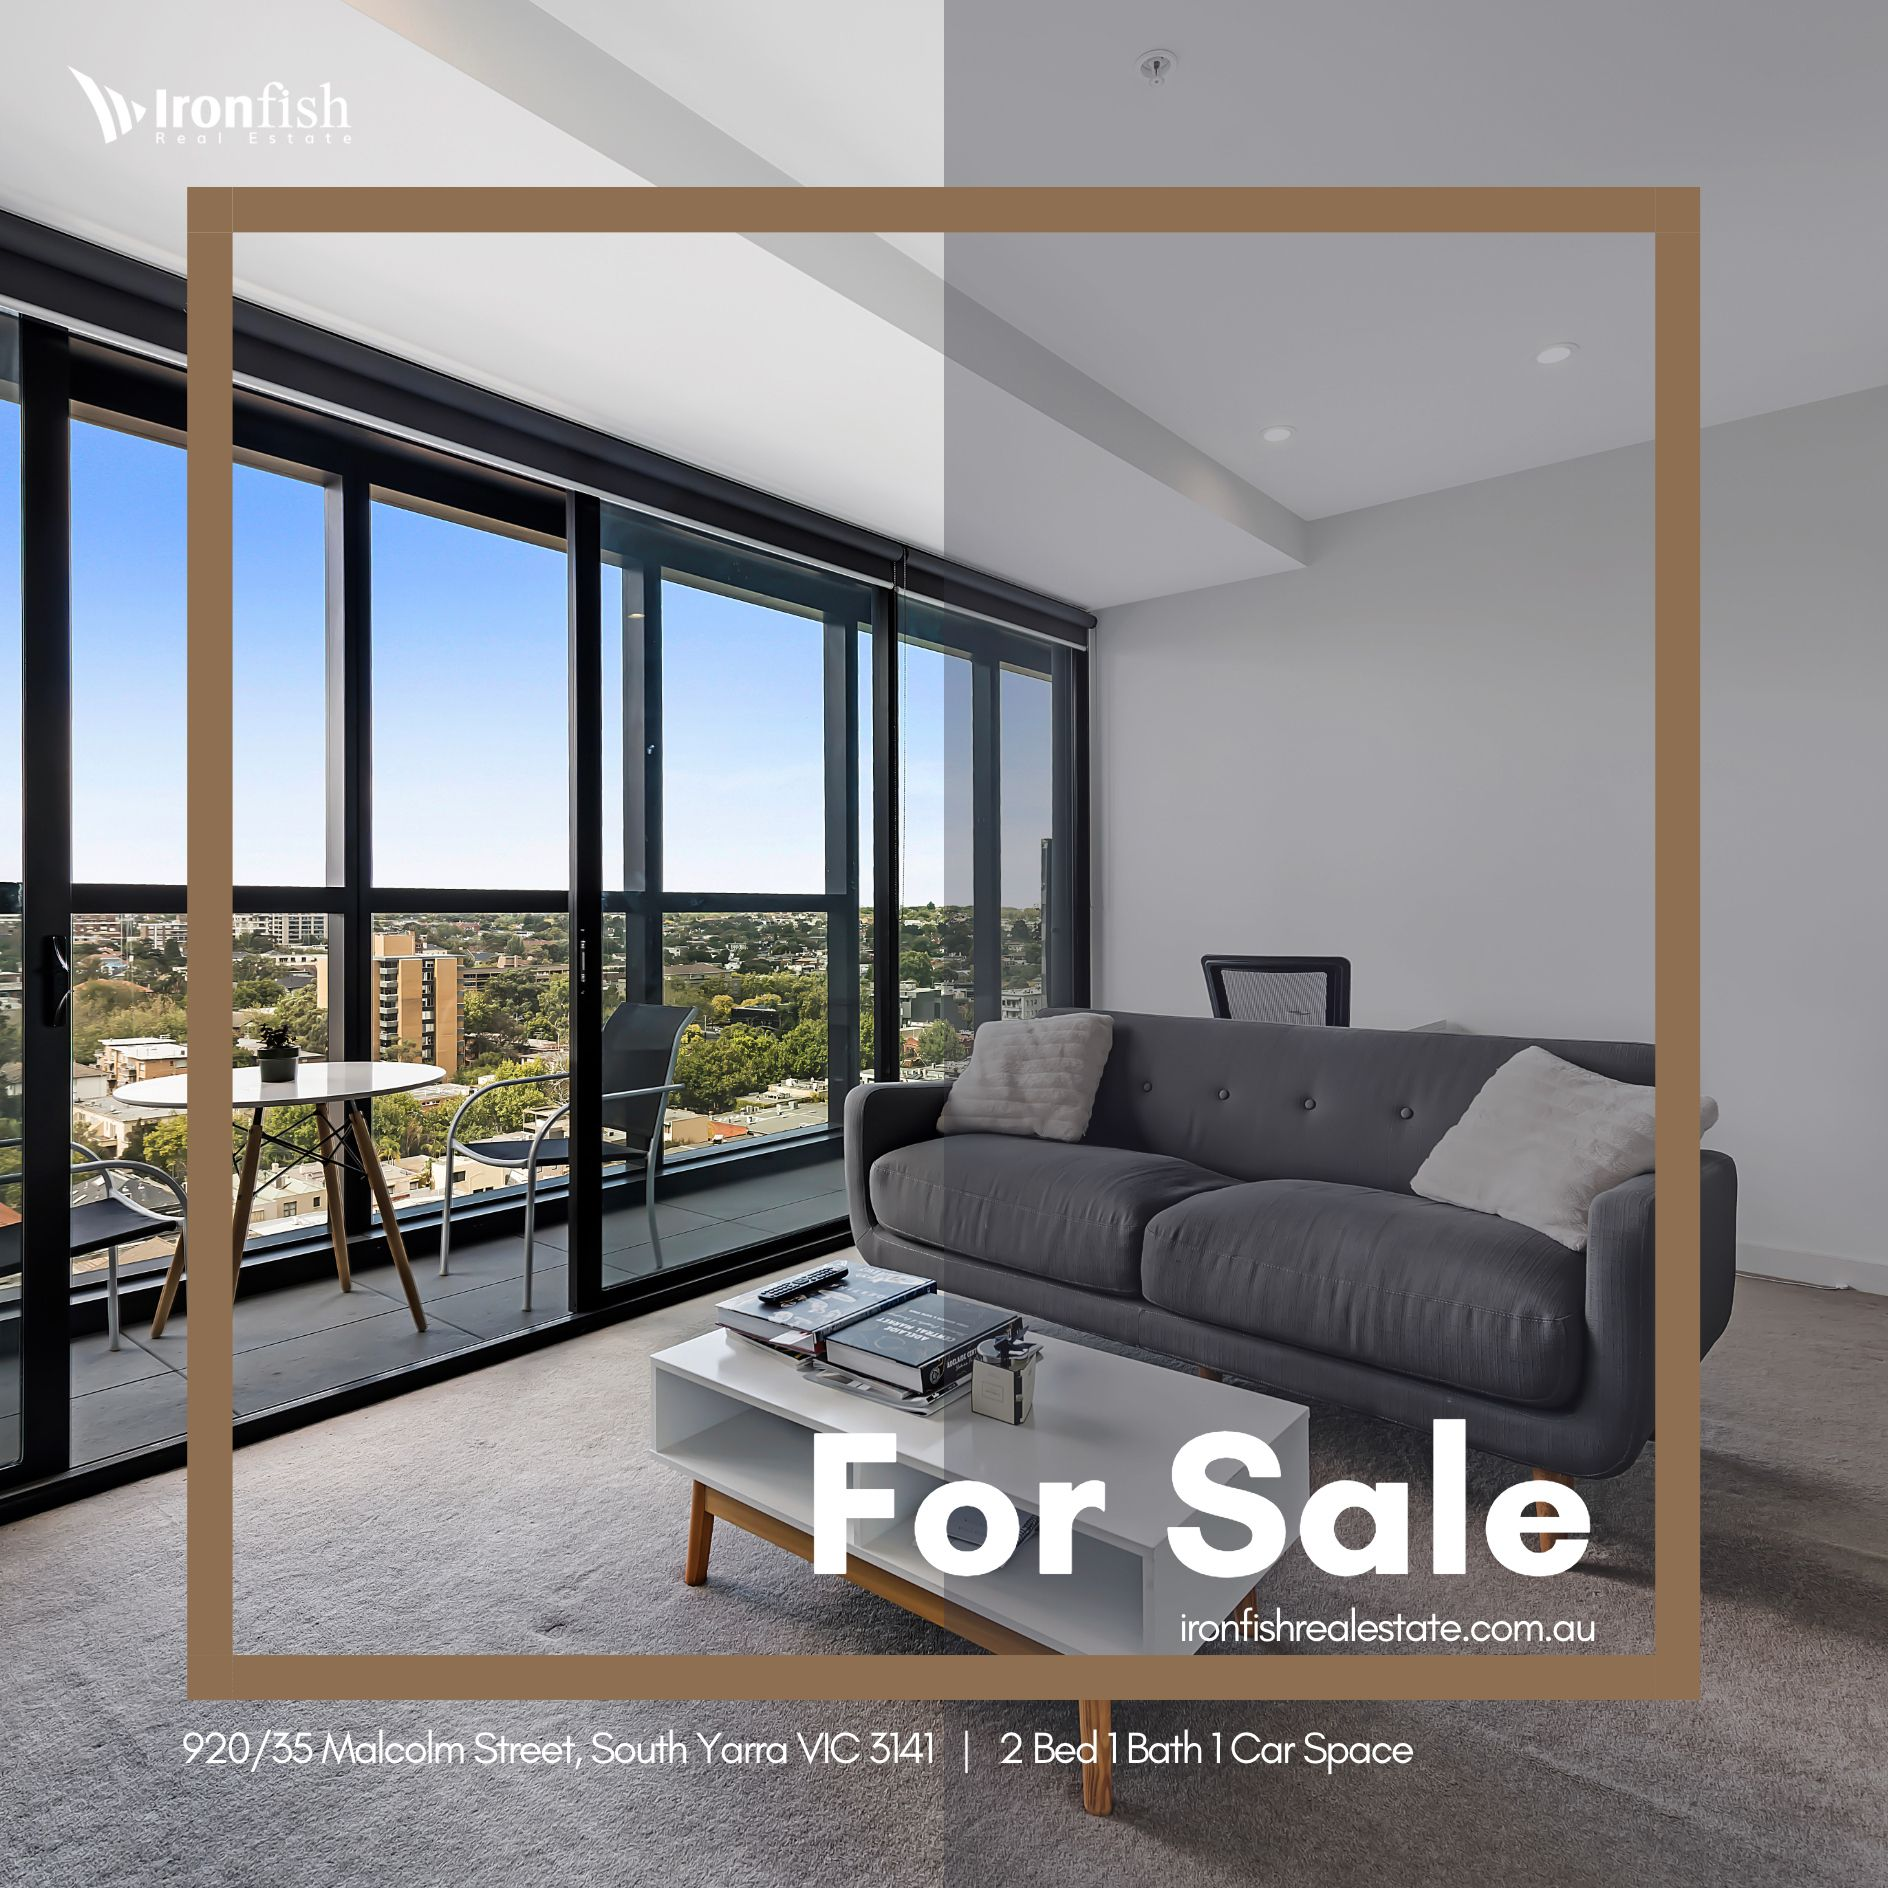 FOR SALE 920/35 Malcolm Street, South Yarra VIC 3141 (2